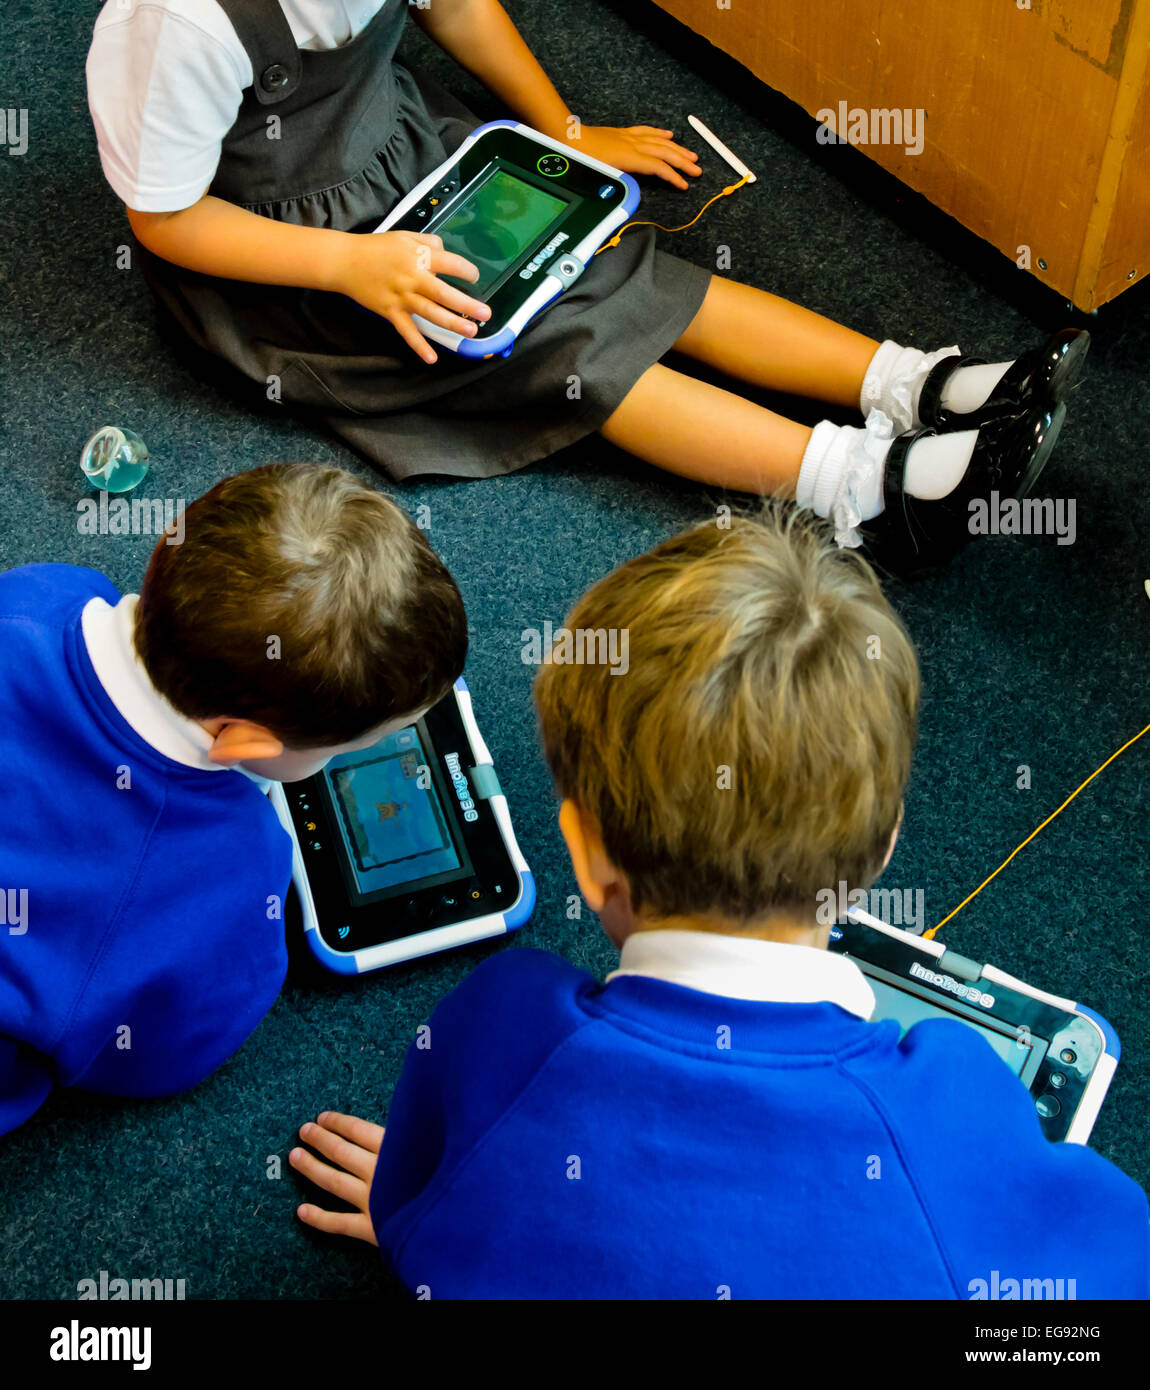 Primary schoolchildren using handheld electronic devices to learn how to read whilst sitting down in a corner of - Stock Image